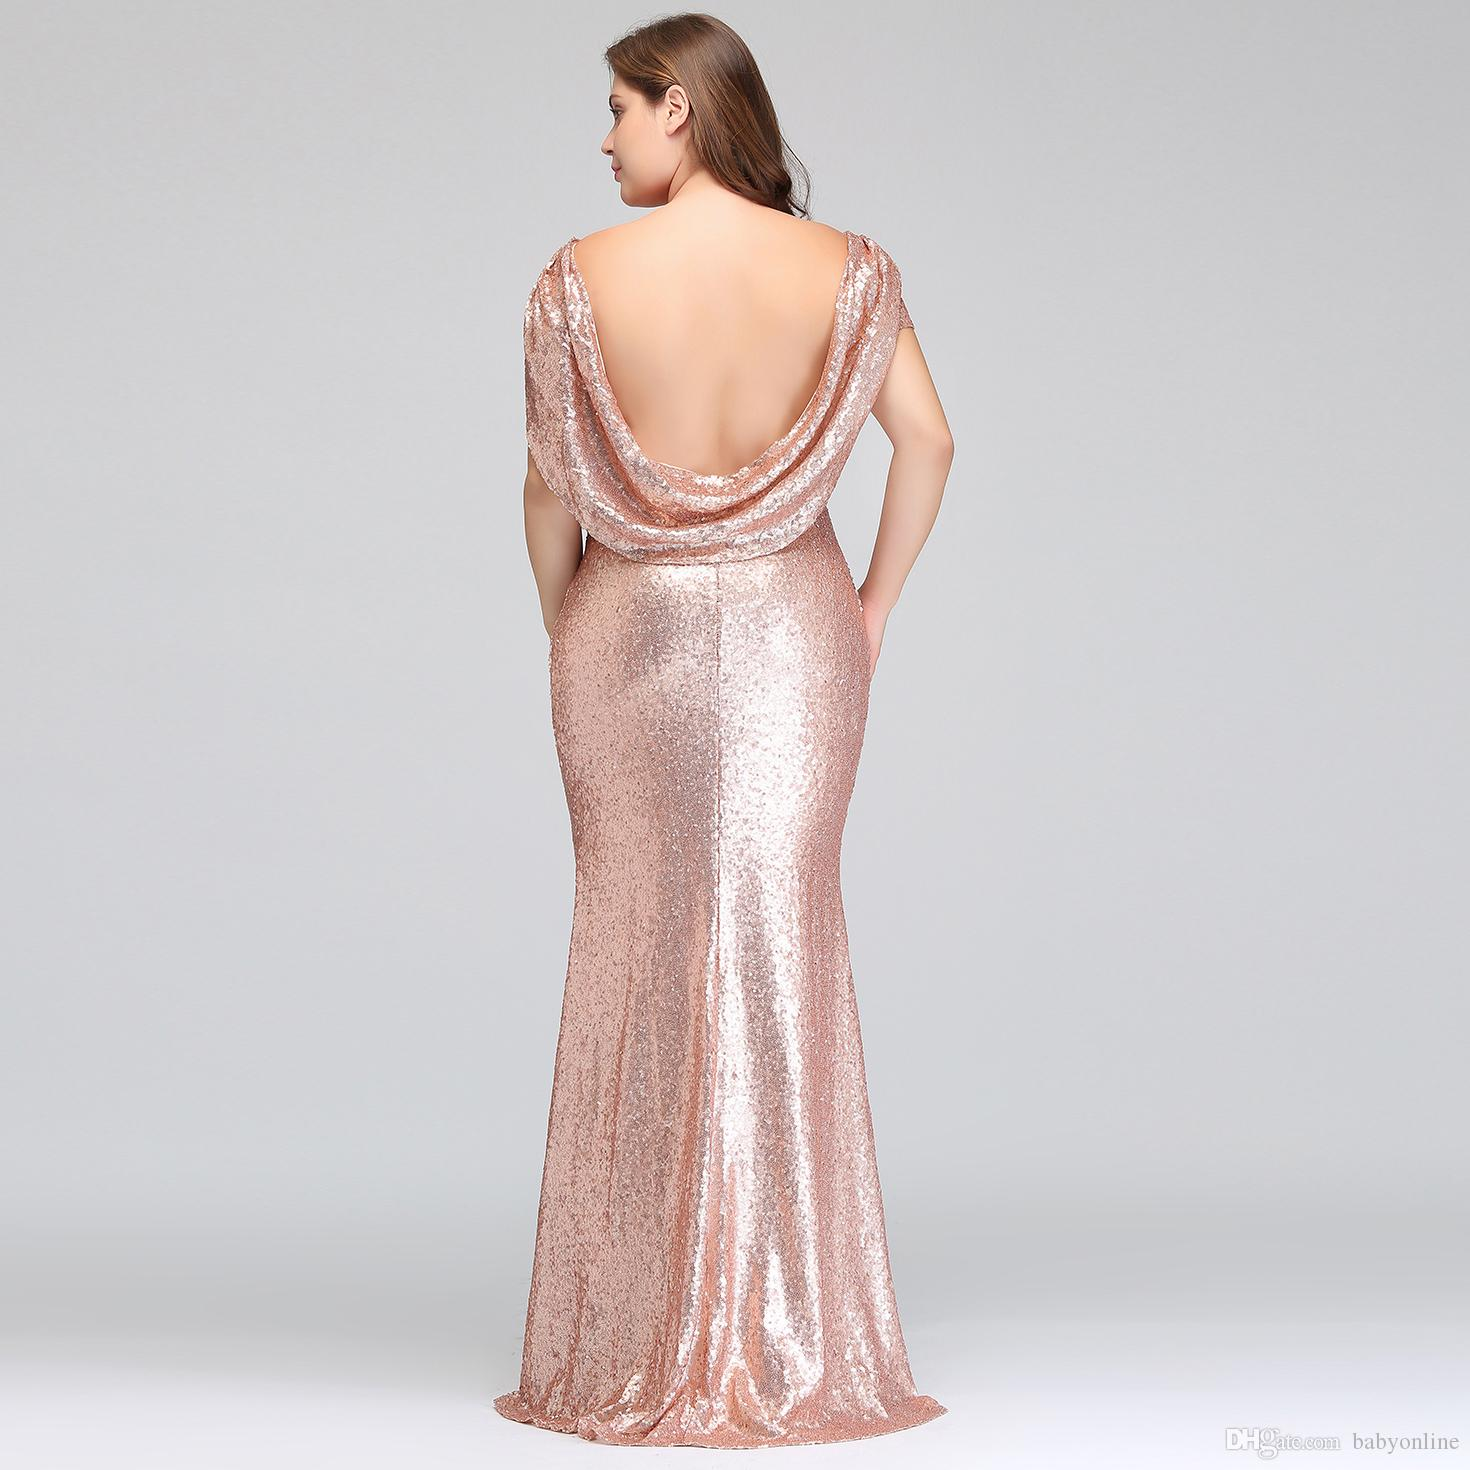 1aca31eb95f871 Plus Size Rose Gold Bridesmaid Dresses Long Sparkling 2018 New Women Elegant  Mermaid Sequined Evening Prom Party Gown Celebrity Formal Dress